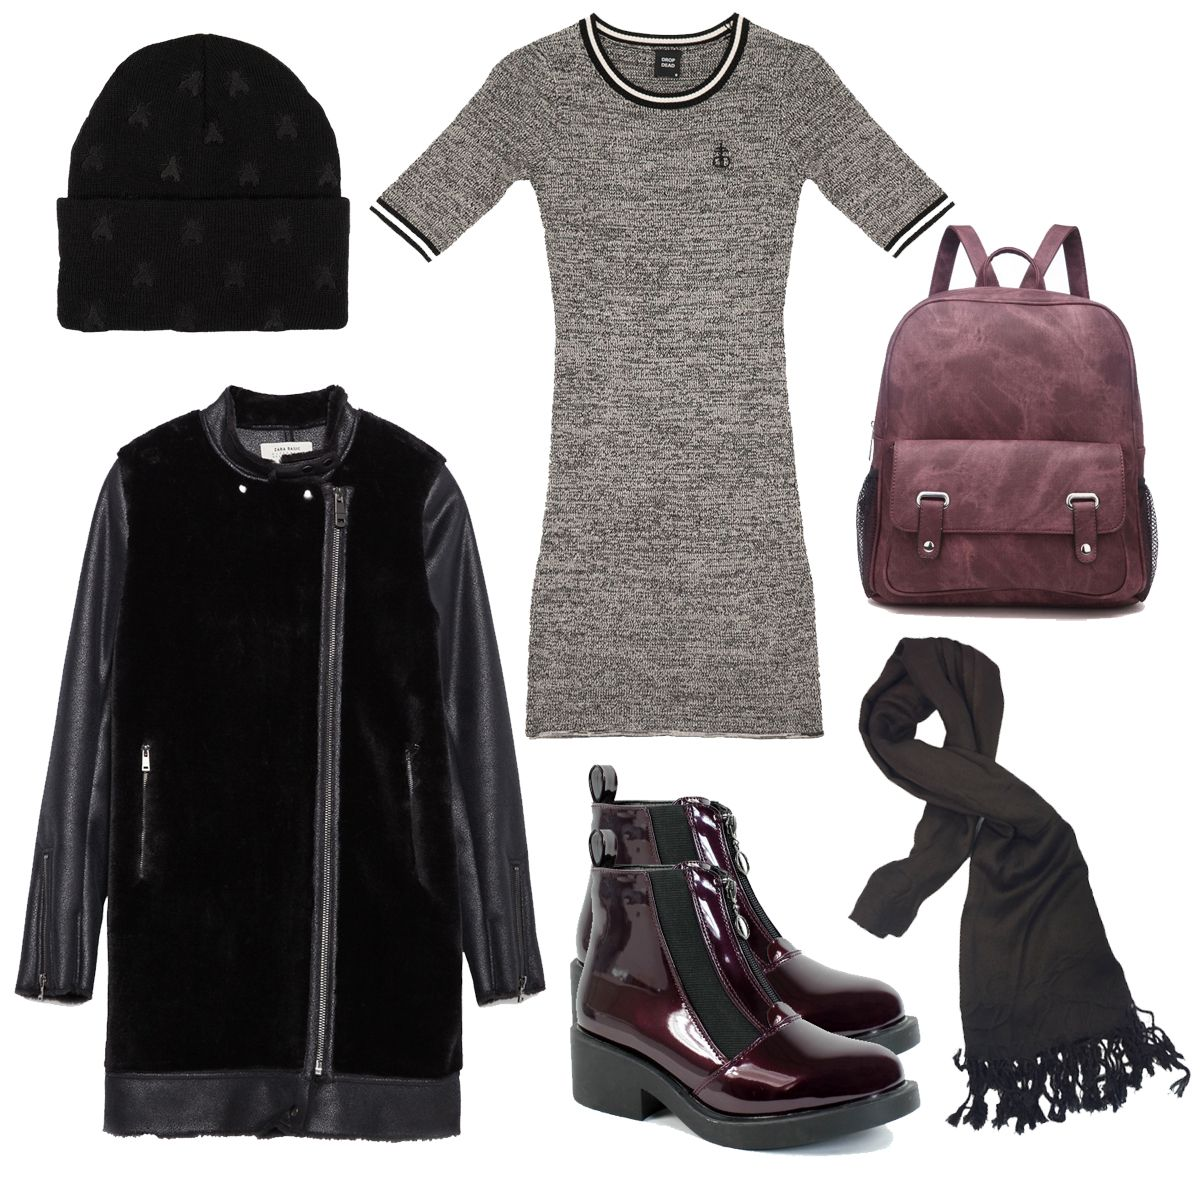 Bonfire Night is around the corner, get Winter warm with Drop Dead's Blasphemy Dress and Buzzing Beanie. Teamed with La Moda chelsea boots, a beautiful Zara Coat and La Moda Accessories.